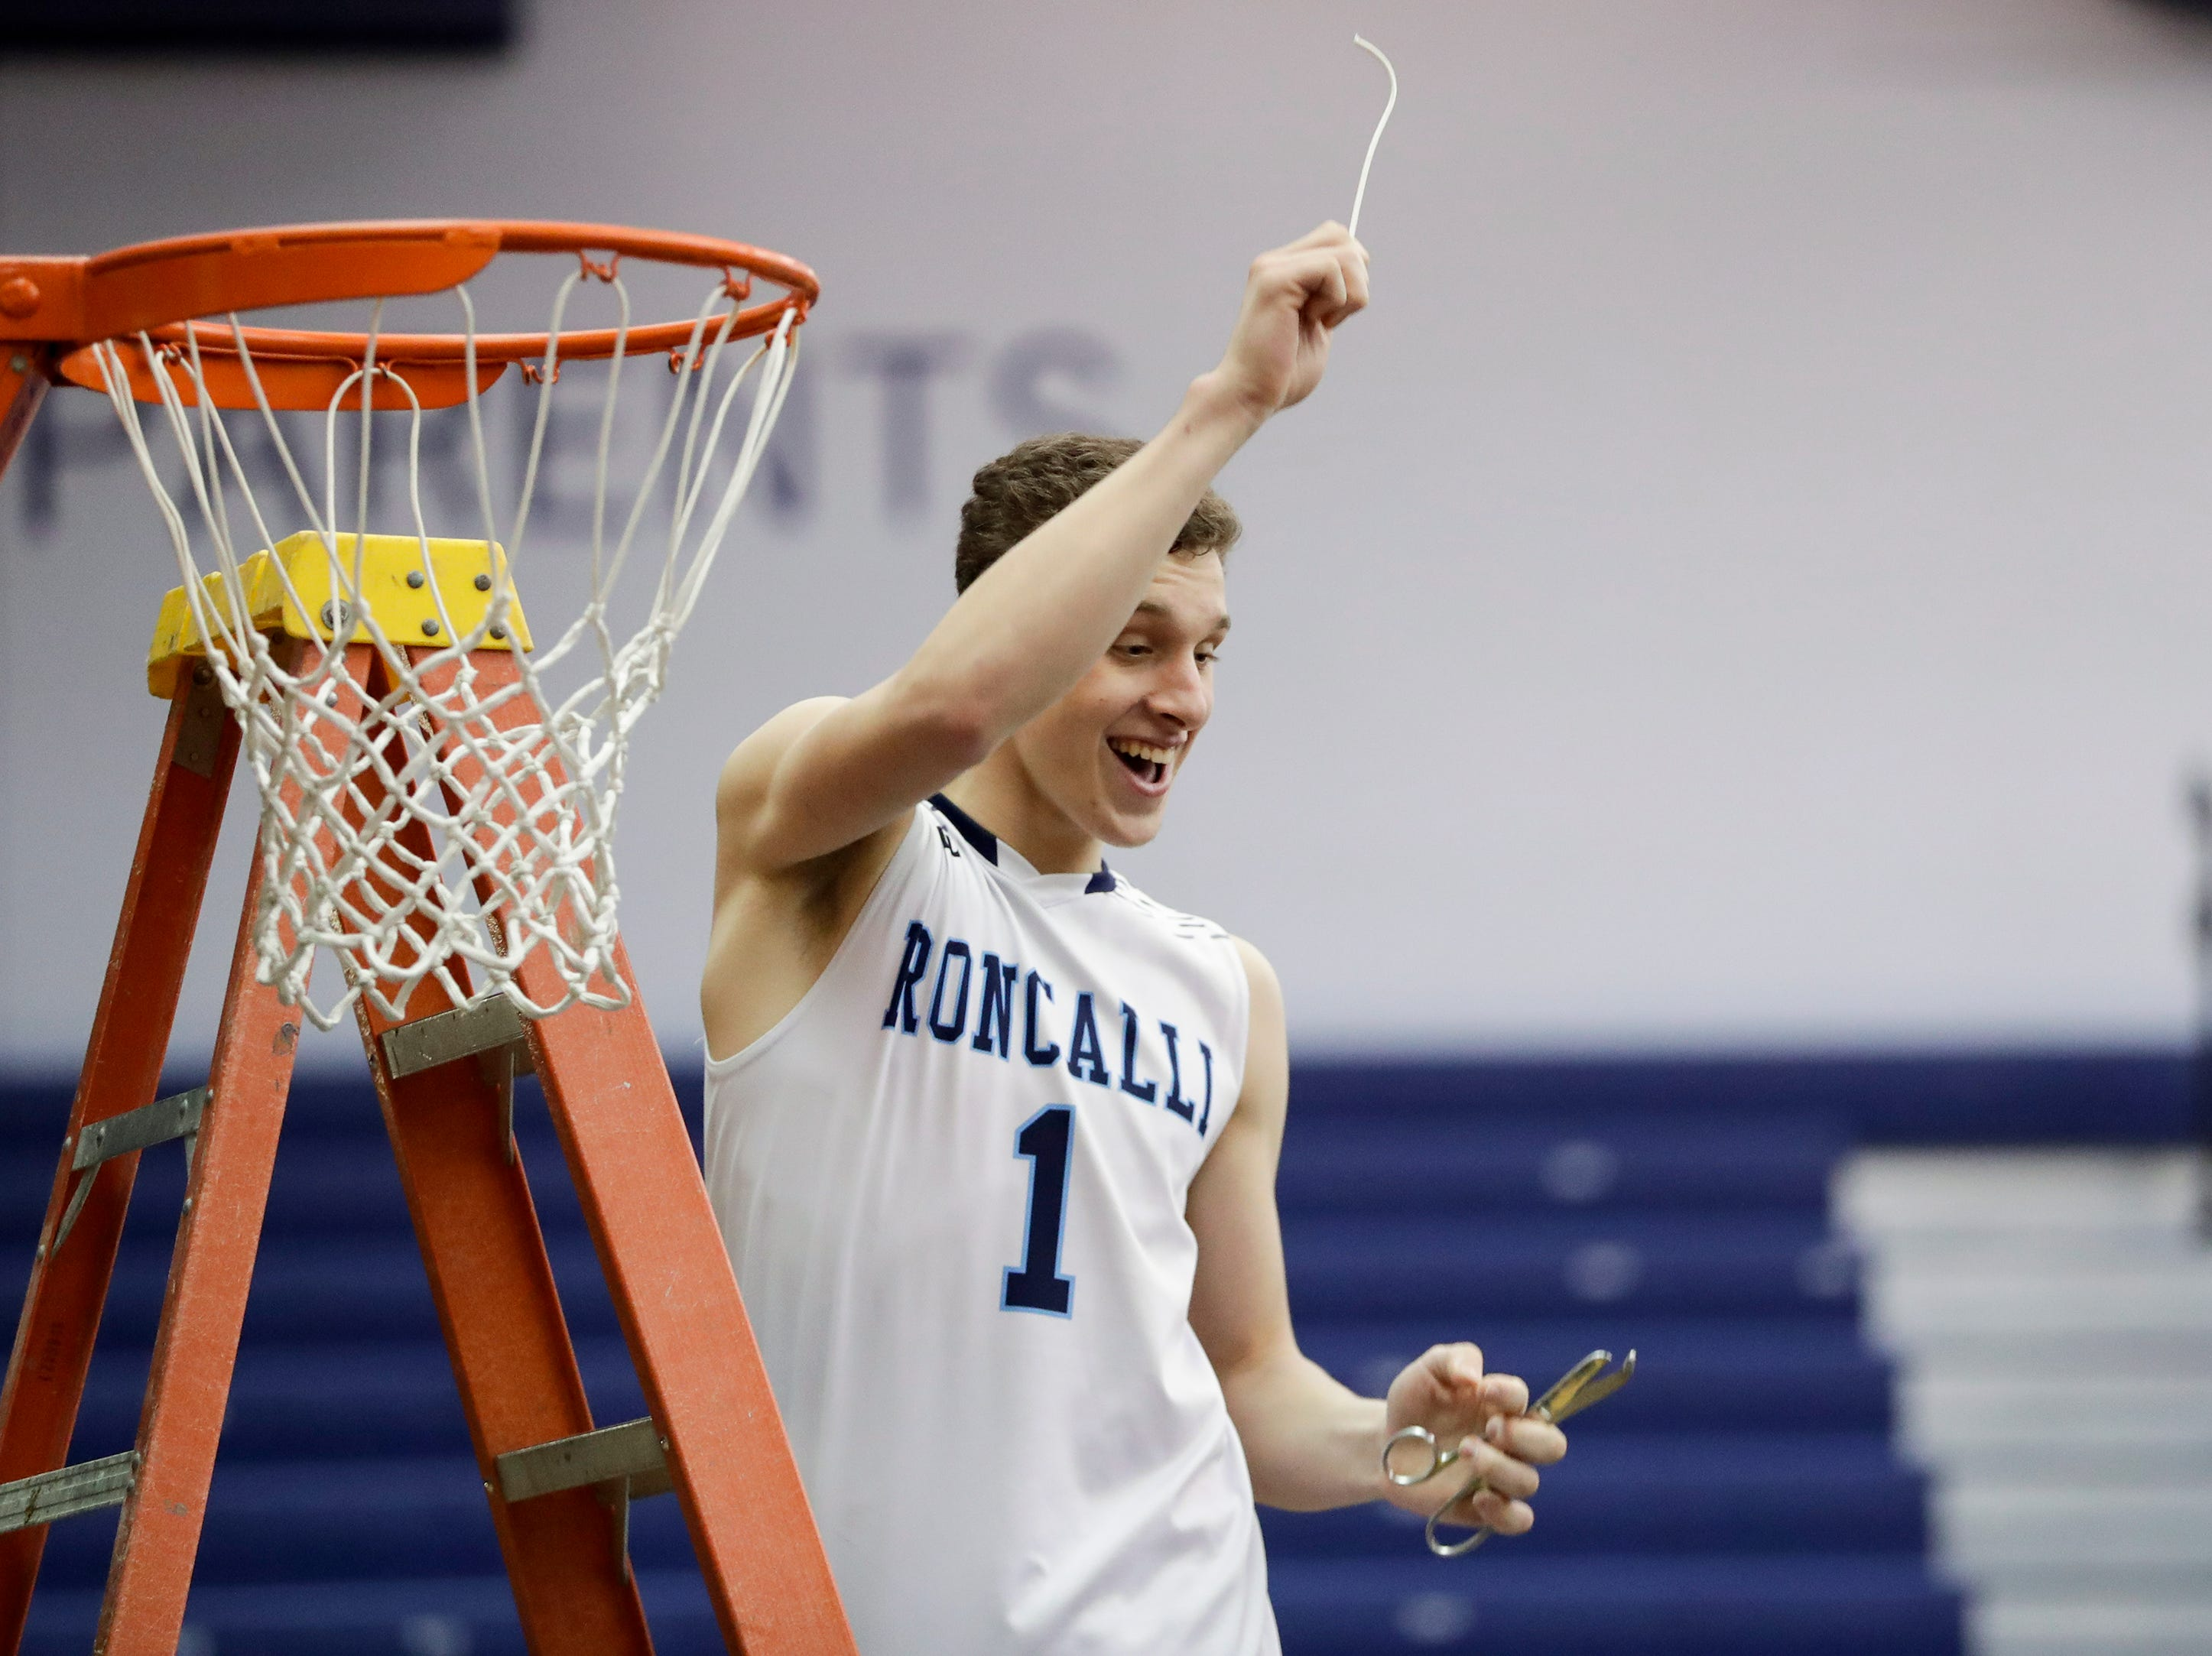 Roncalli's Daniel Burgarino (1) cuts the net after the Jets defeat Milwaukee Academy of Science for a WIAA Division 4 sectional championship 81-53 at Sheboygan North High School Saturday, March 9, 2019, in Sheboygan, Wis. Joshua Clark/USA TODAY NETWORK-Wisconsin